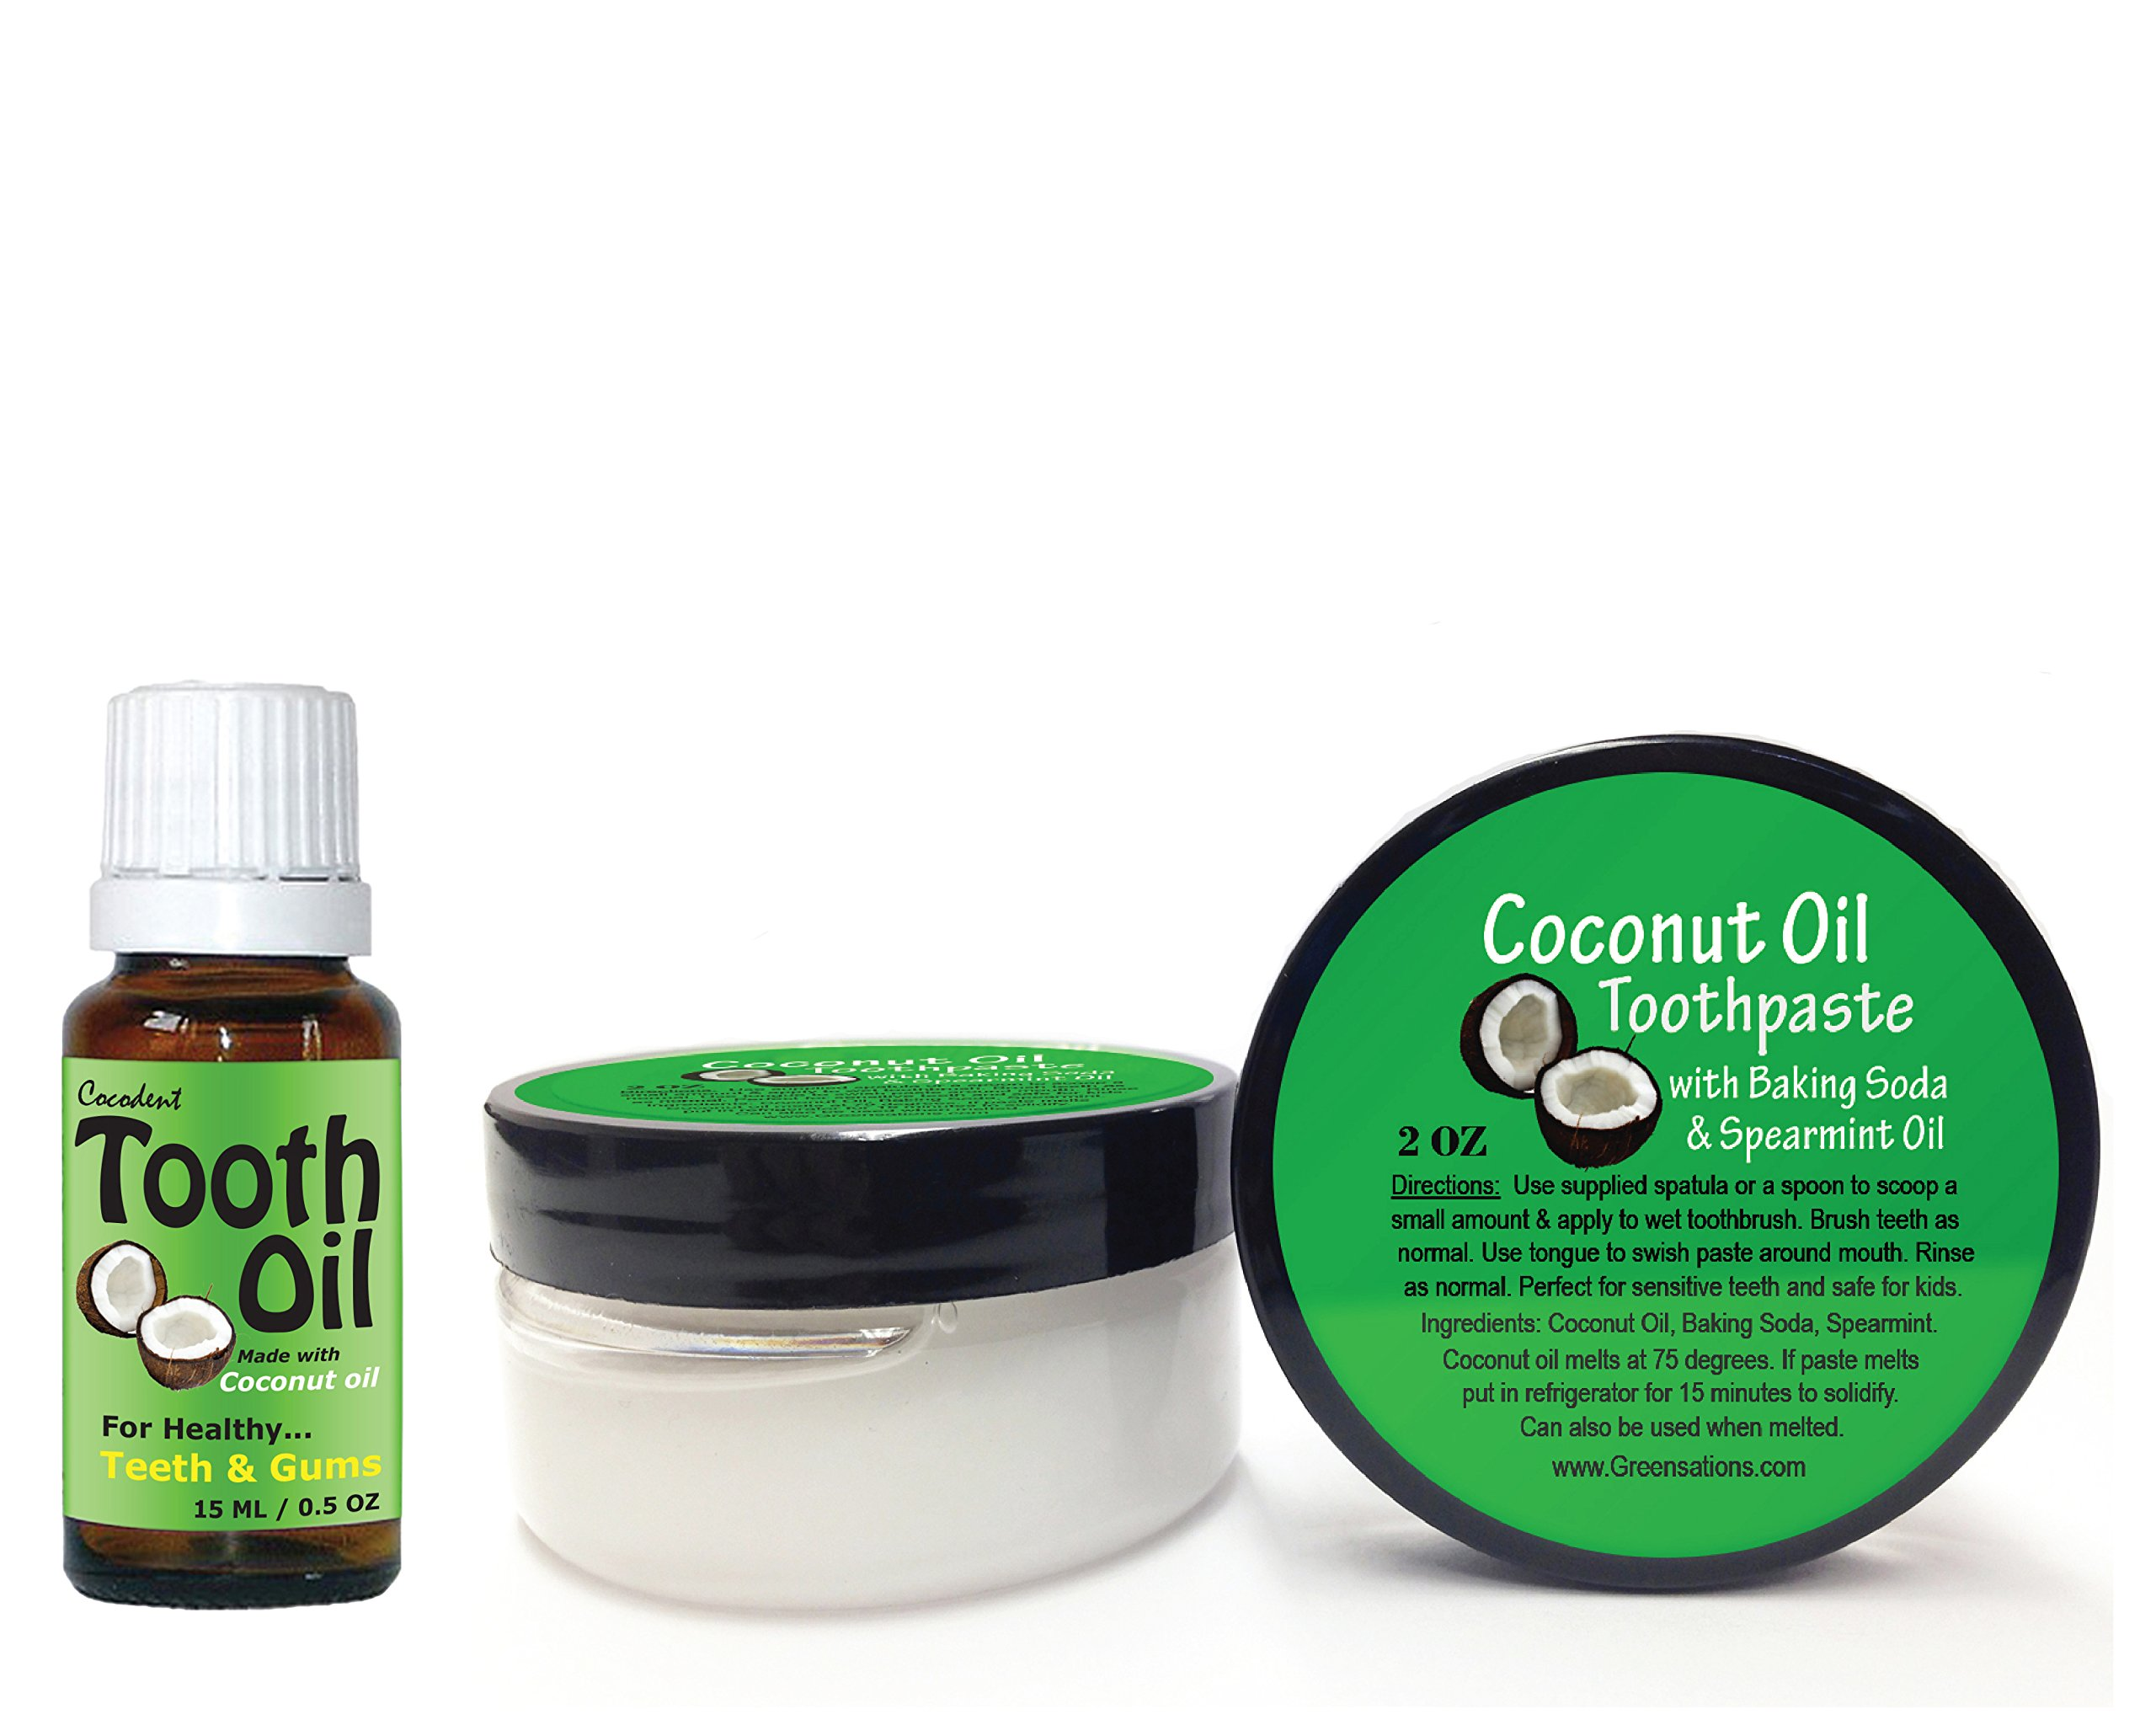 Coconut Oil Toothpaste Tooth Oil Kit for Natural Teeth Whitening and Oral Care